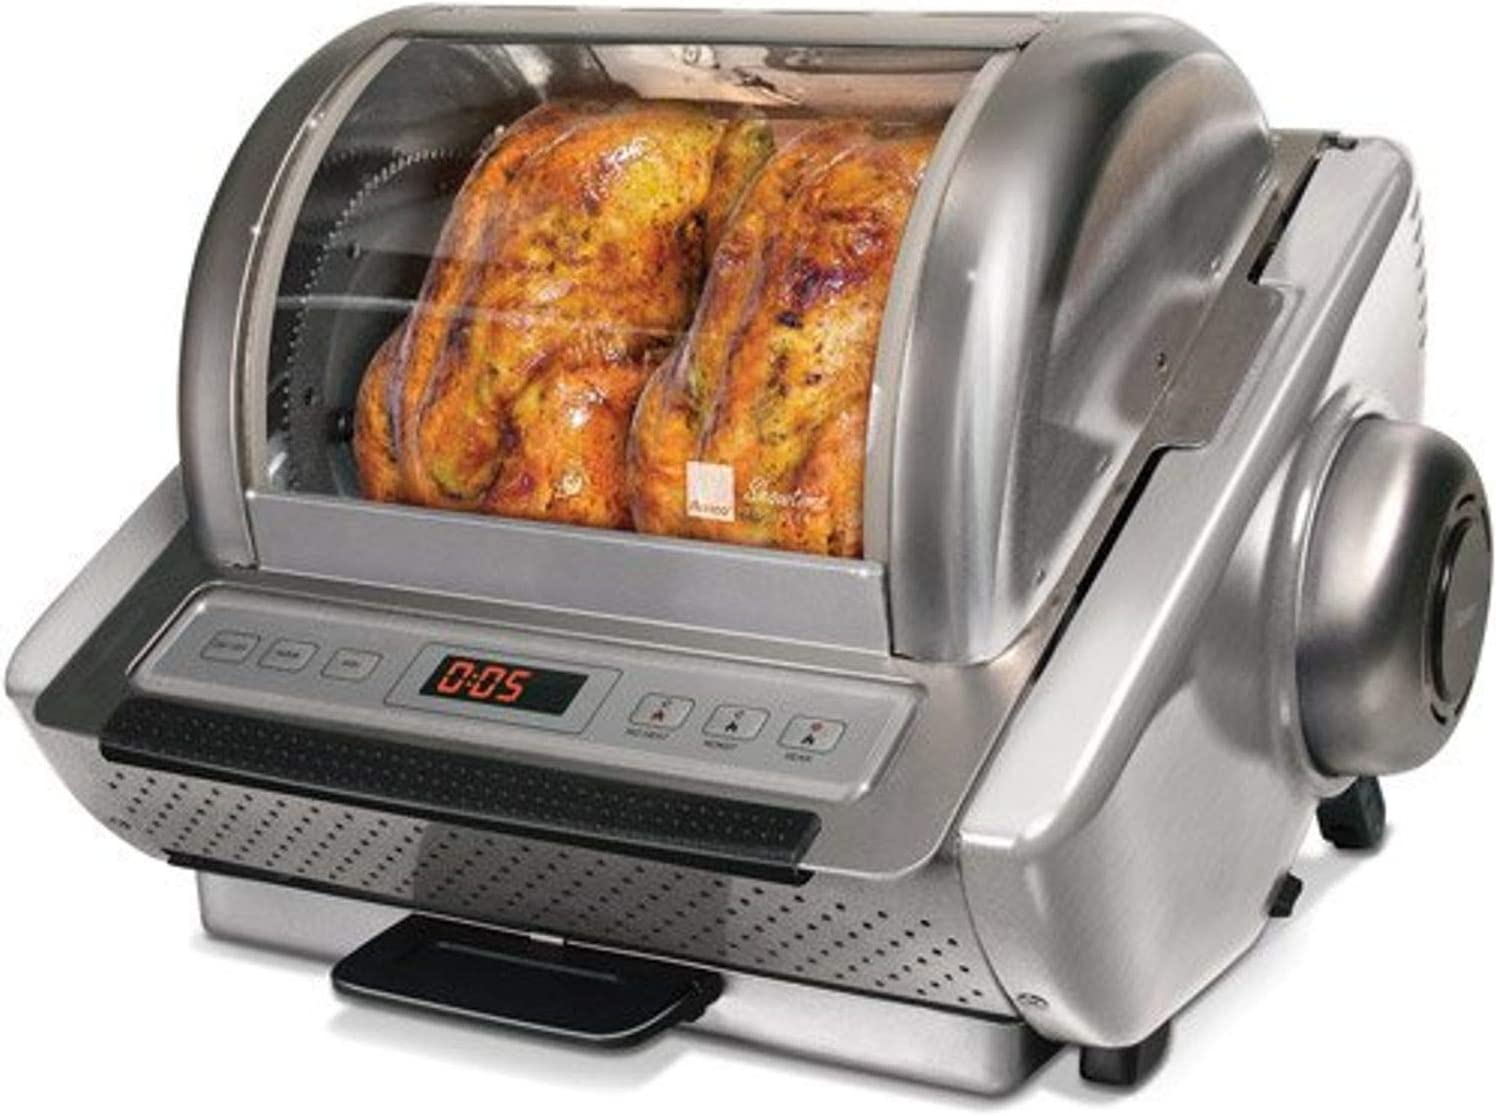 Ronco EZ Store Rotisserie Oven (stainless steel)